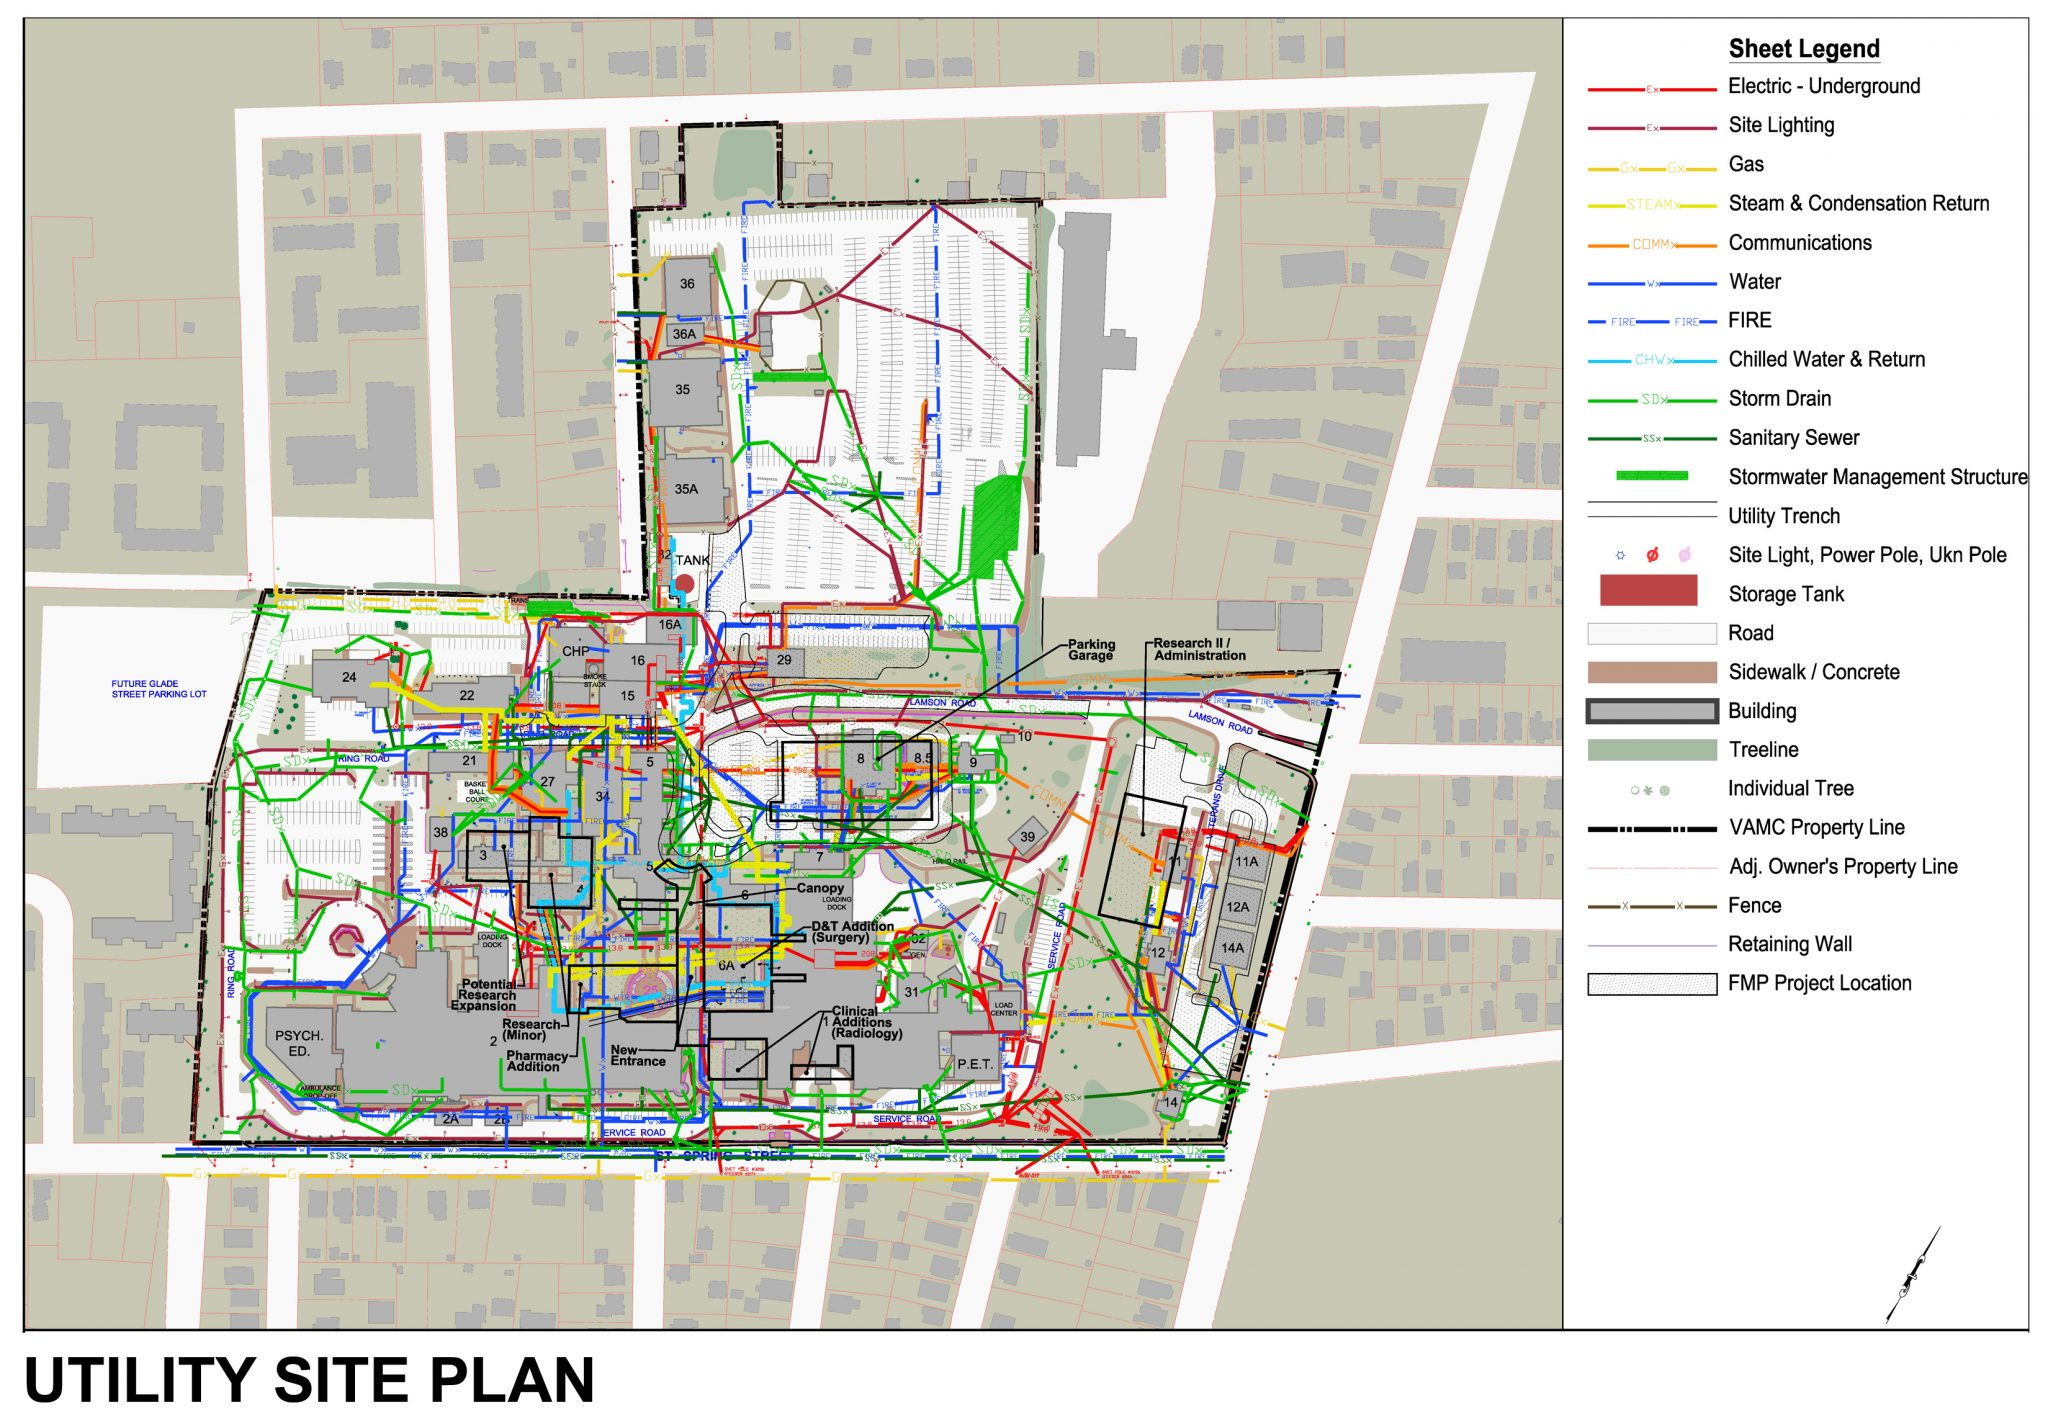 https://www.ebapc.com/wp-content/uploads/2016/04/UTILITY-SITE-PLAN.jpg